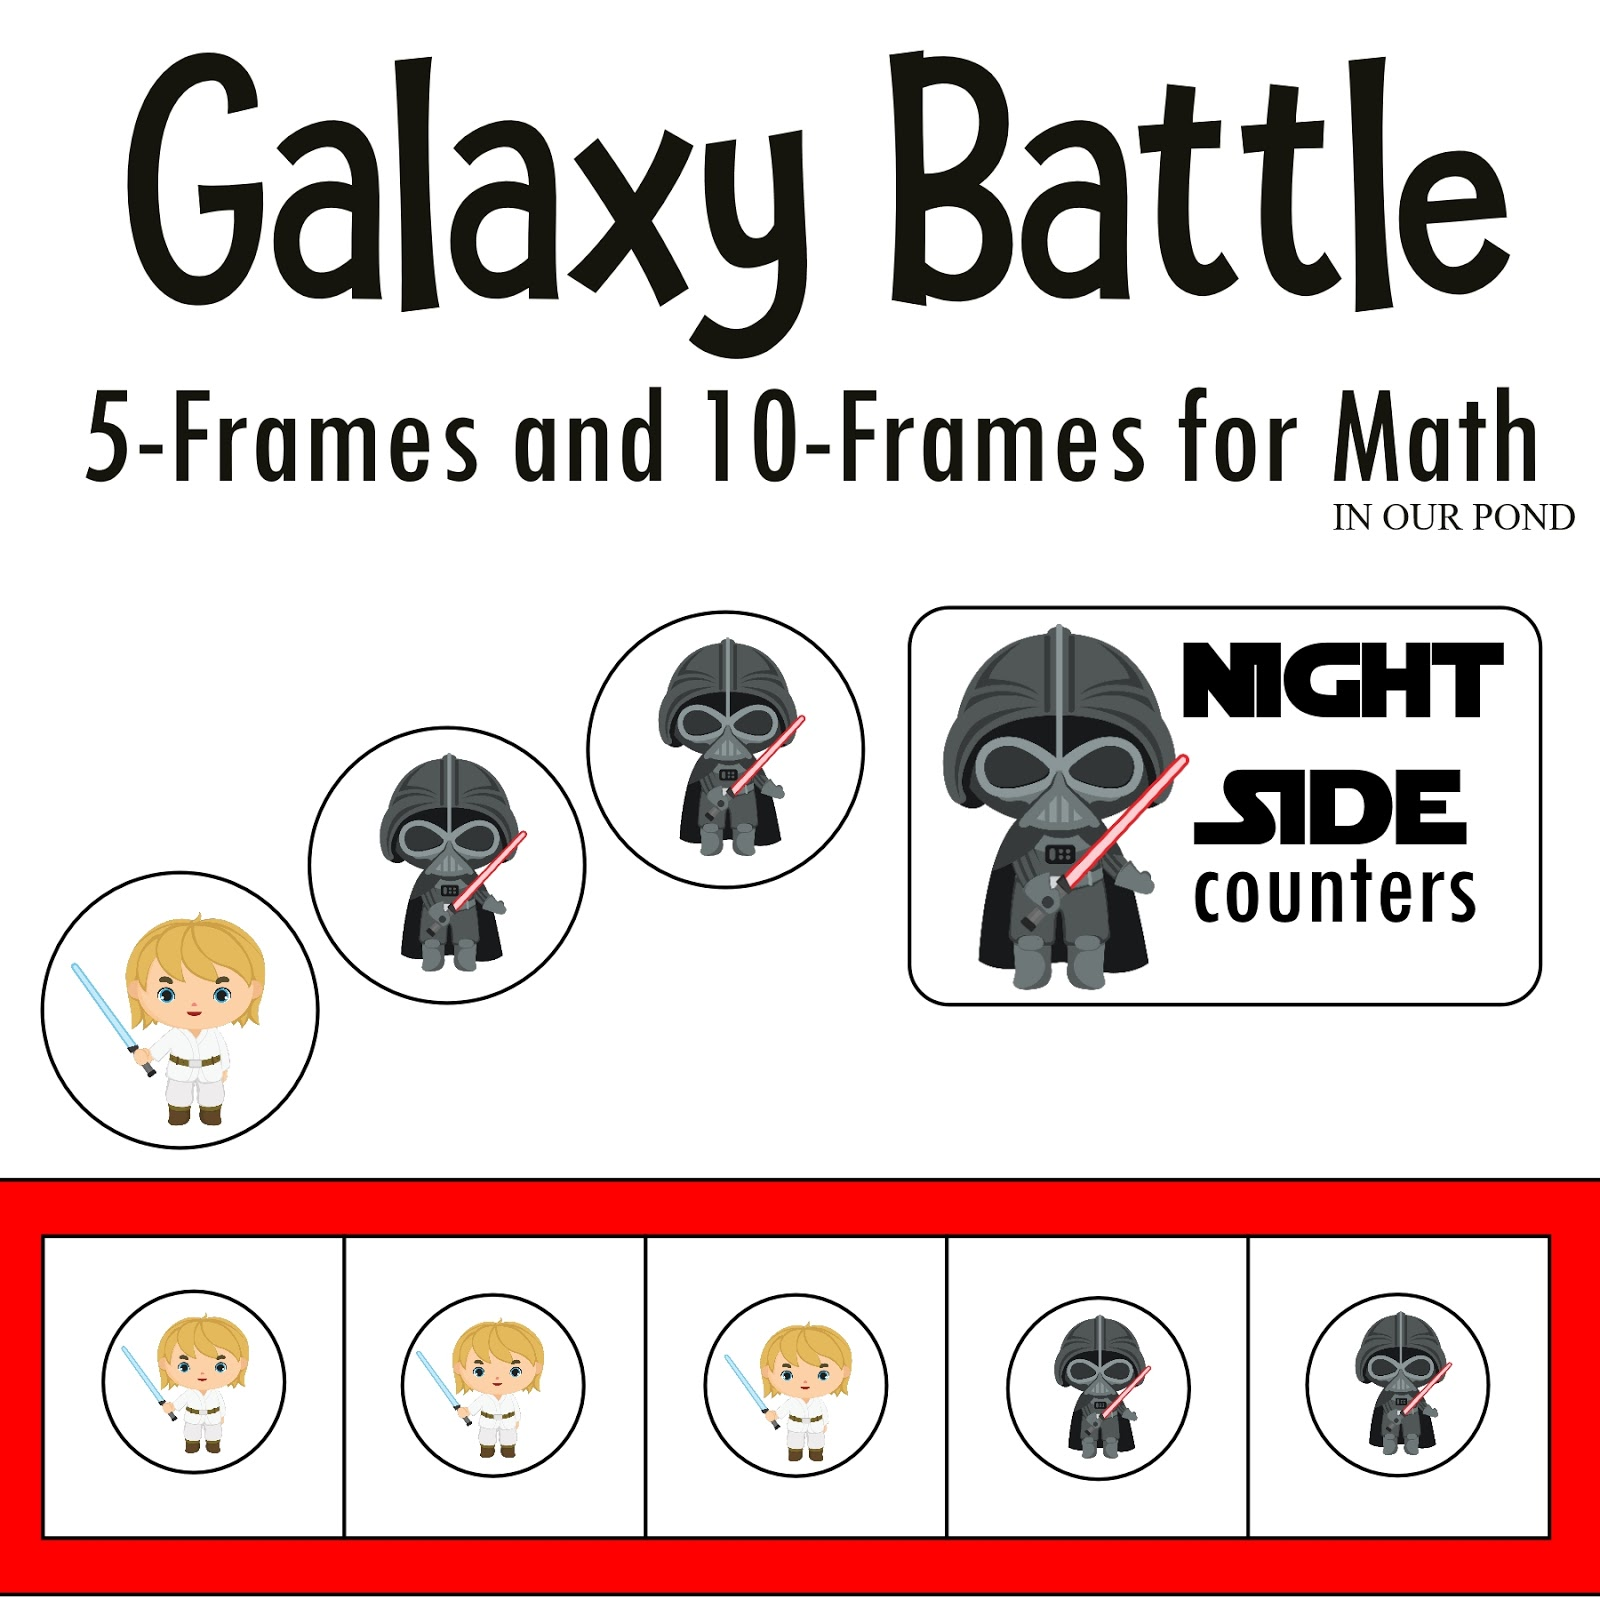 Galaxy Battle Math Duel Forces Counters